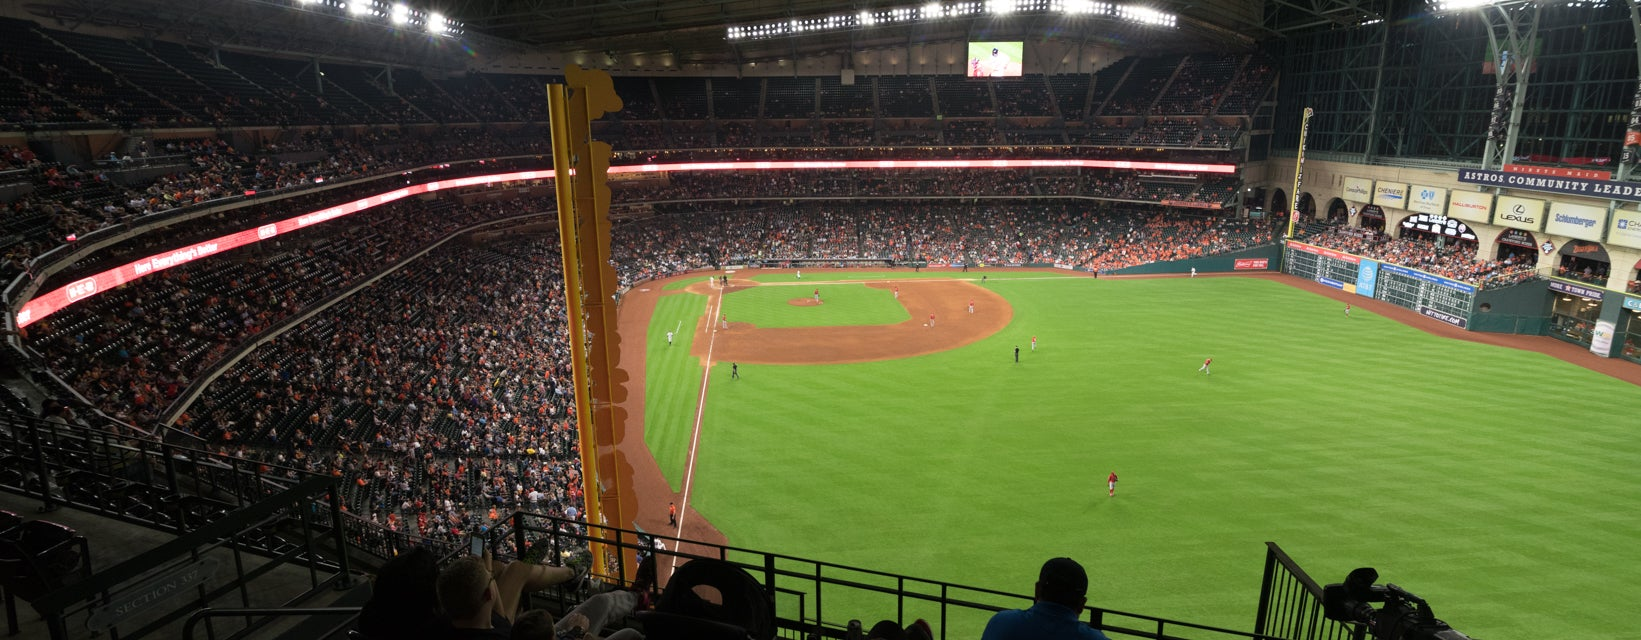 Seat view from Outfield Deck II